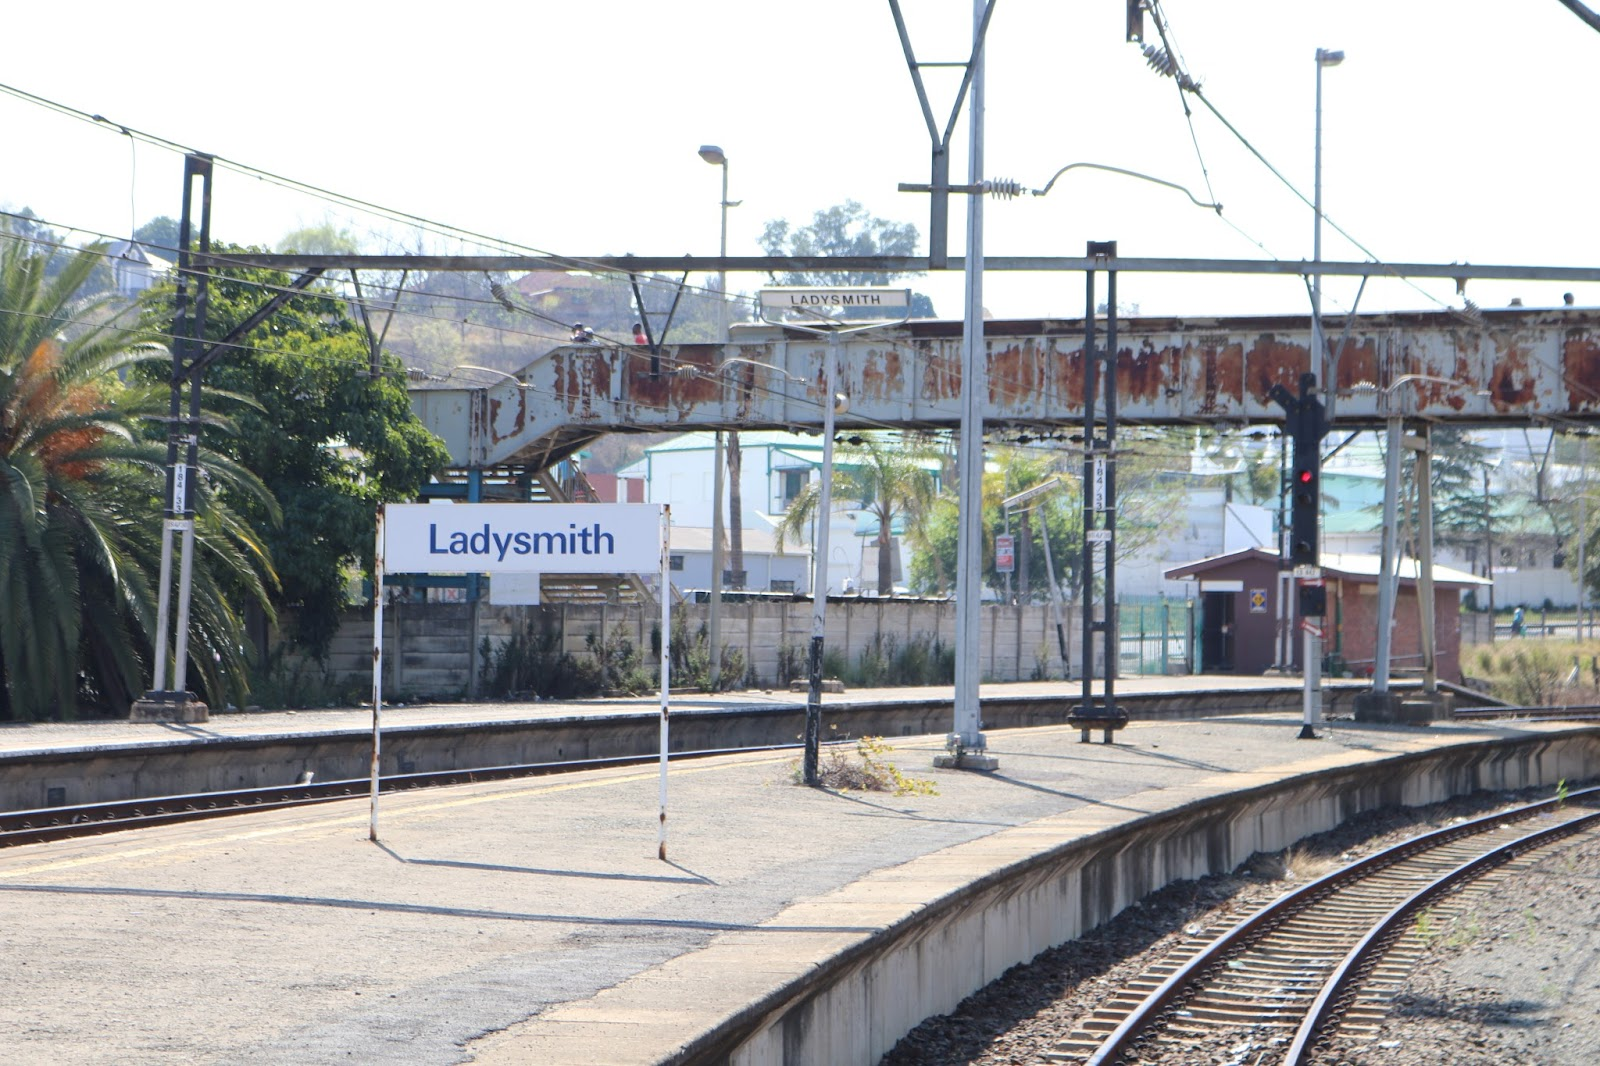 Ladysmith Station, South Africa from Rovos Rail